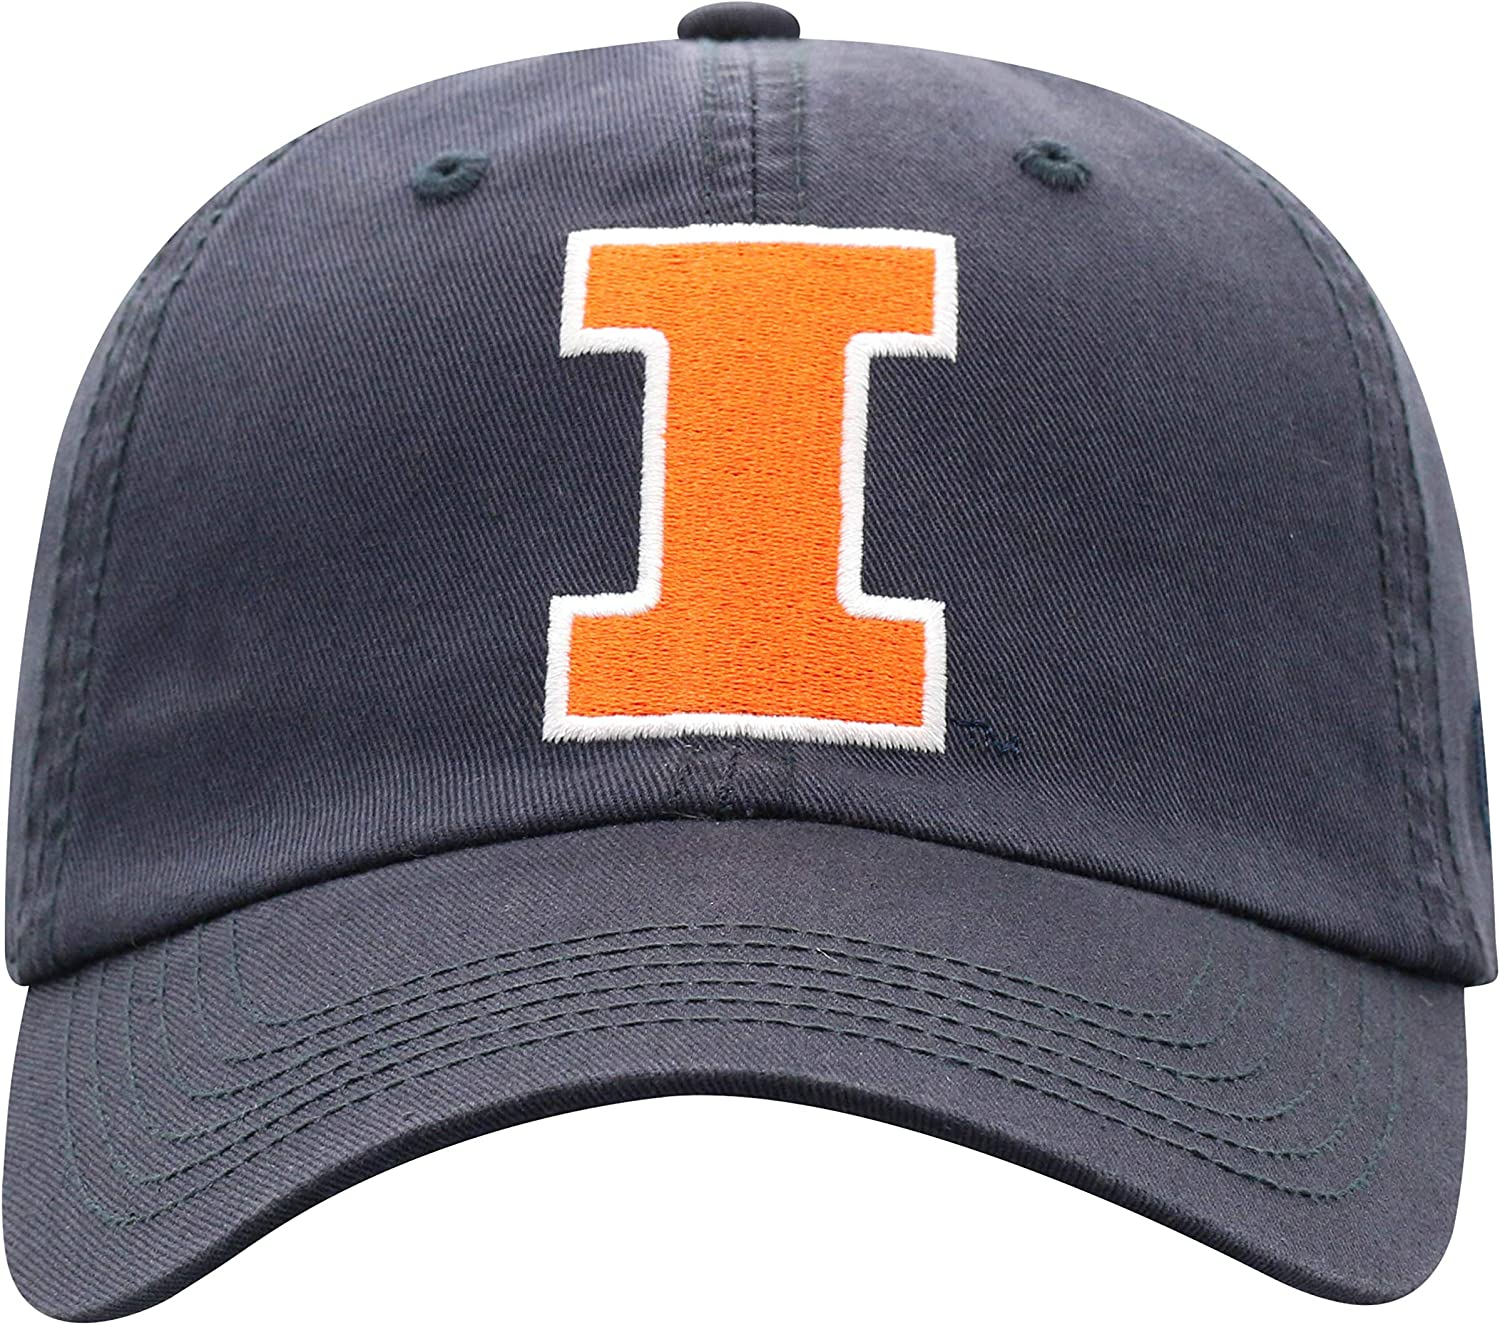 Top of the World Kids Hat Adjustable Relaxed Fit Team Icon